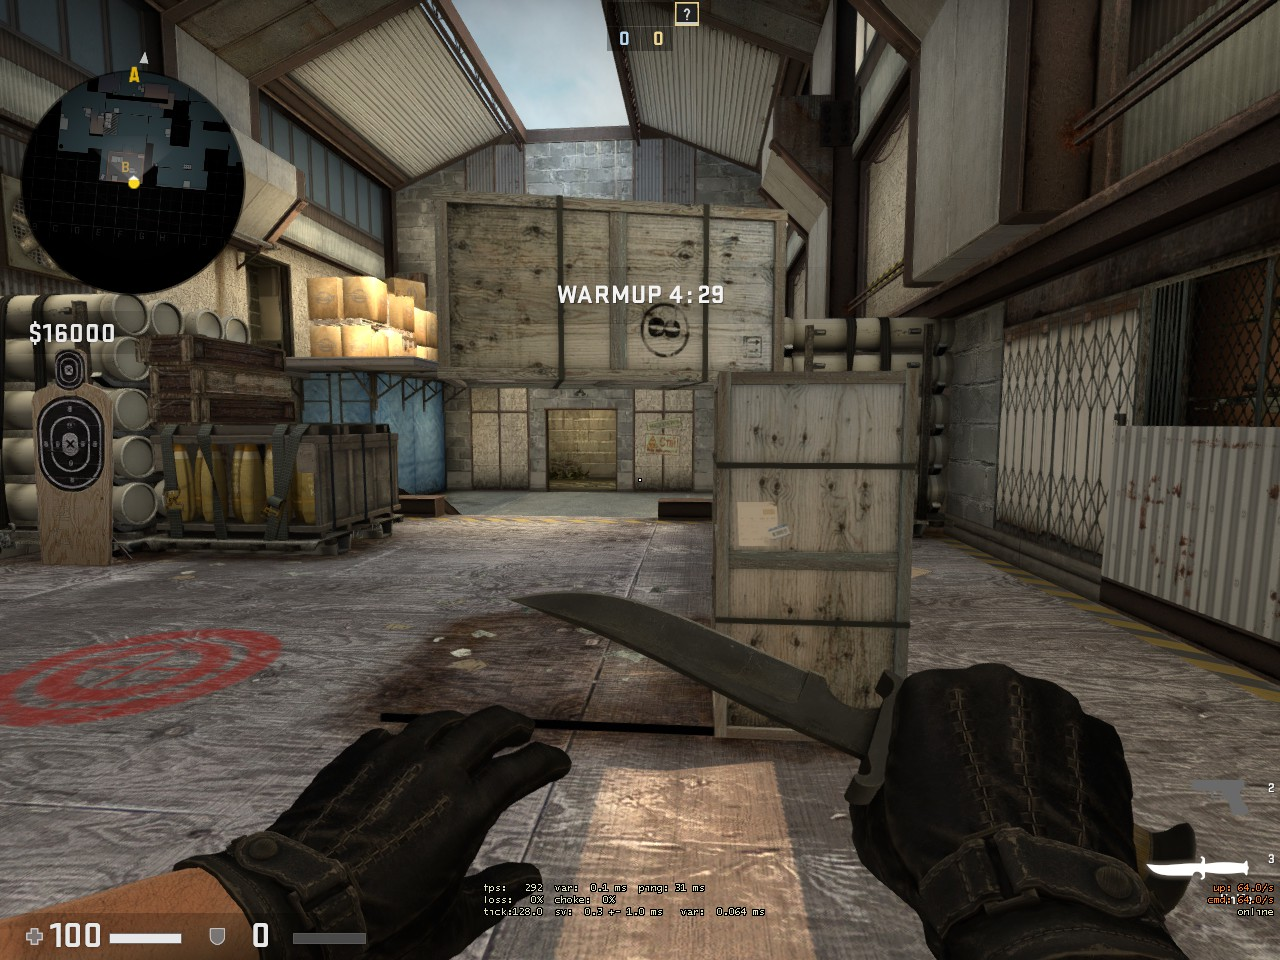 Permanent Feature] Wallhack Exploit: By corrupting the